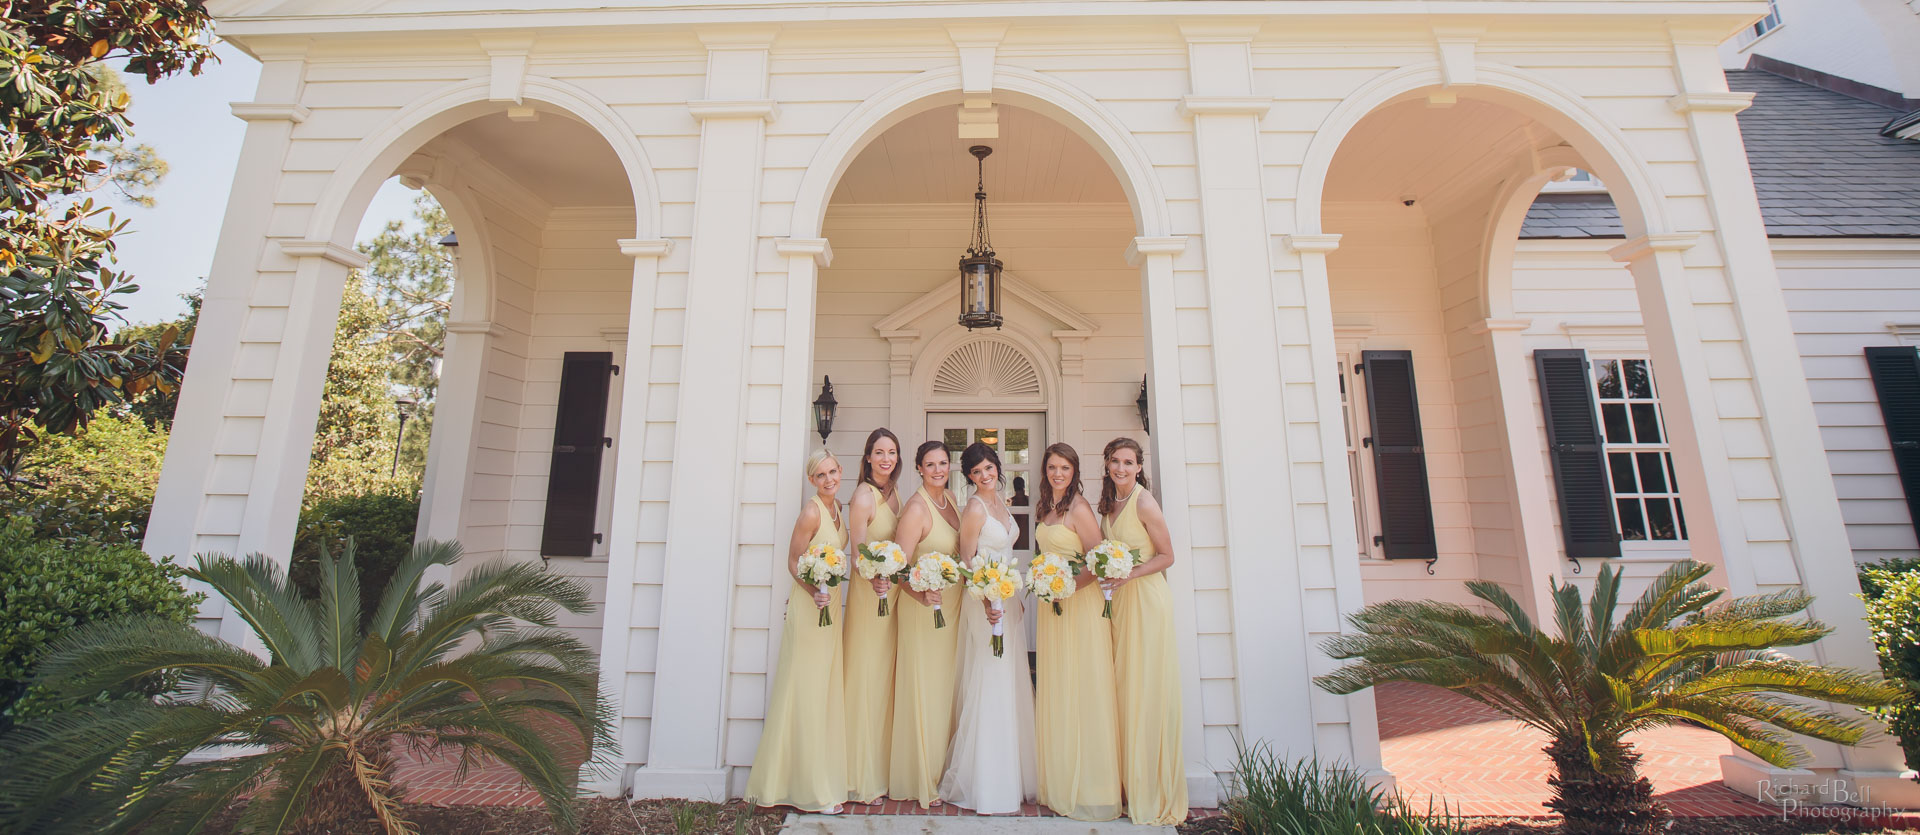 Natalie and Bridesmaids